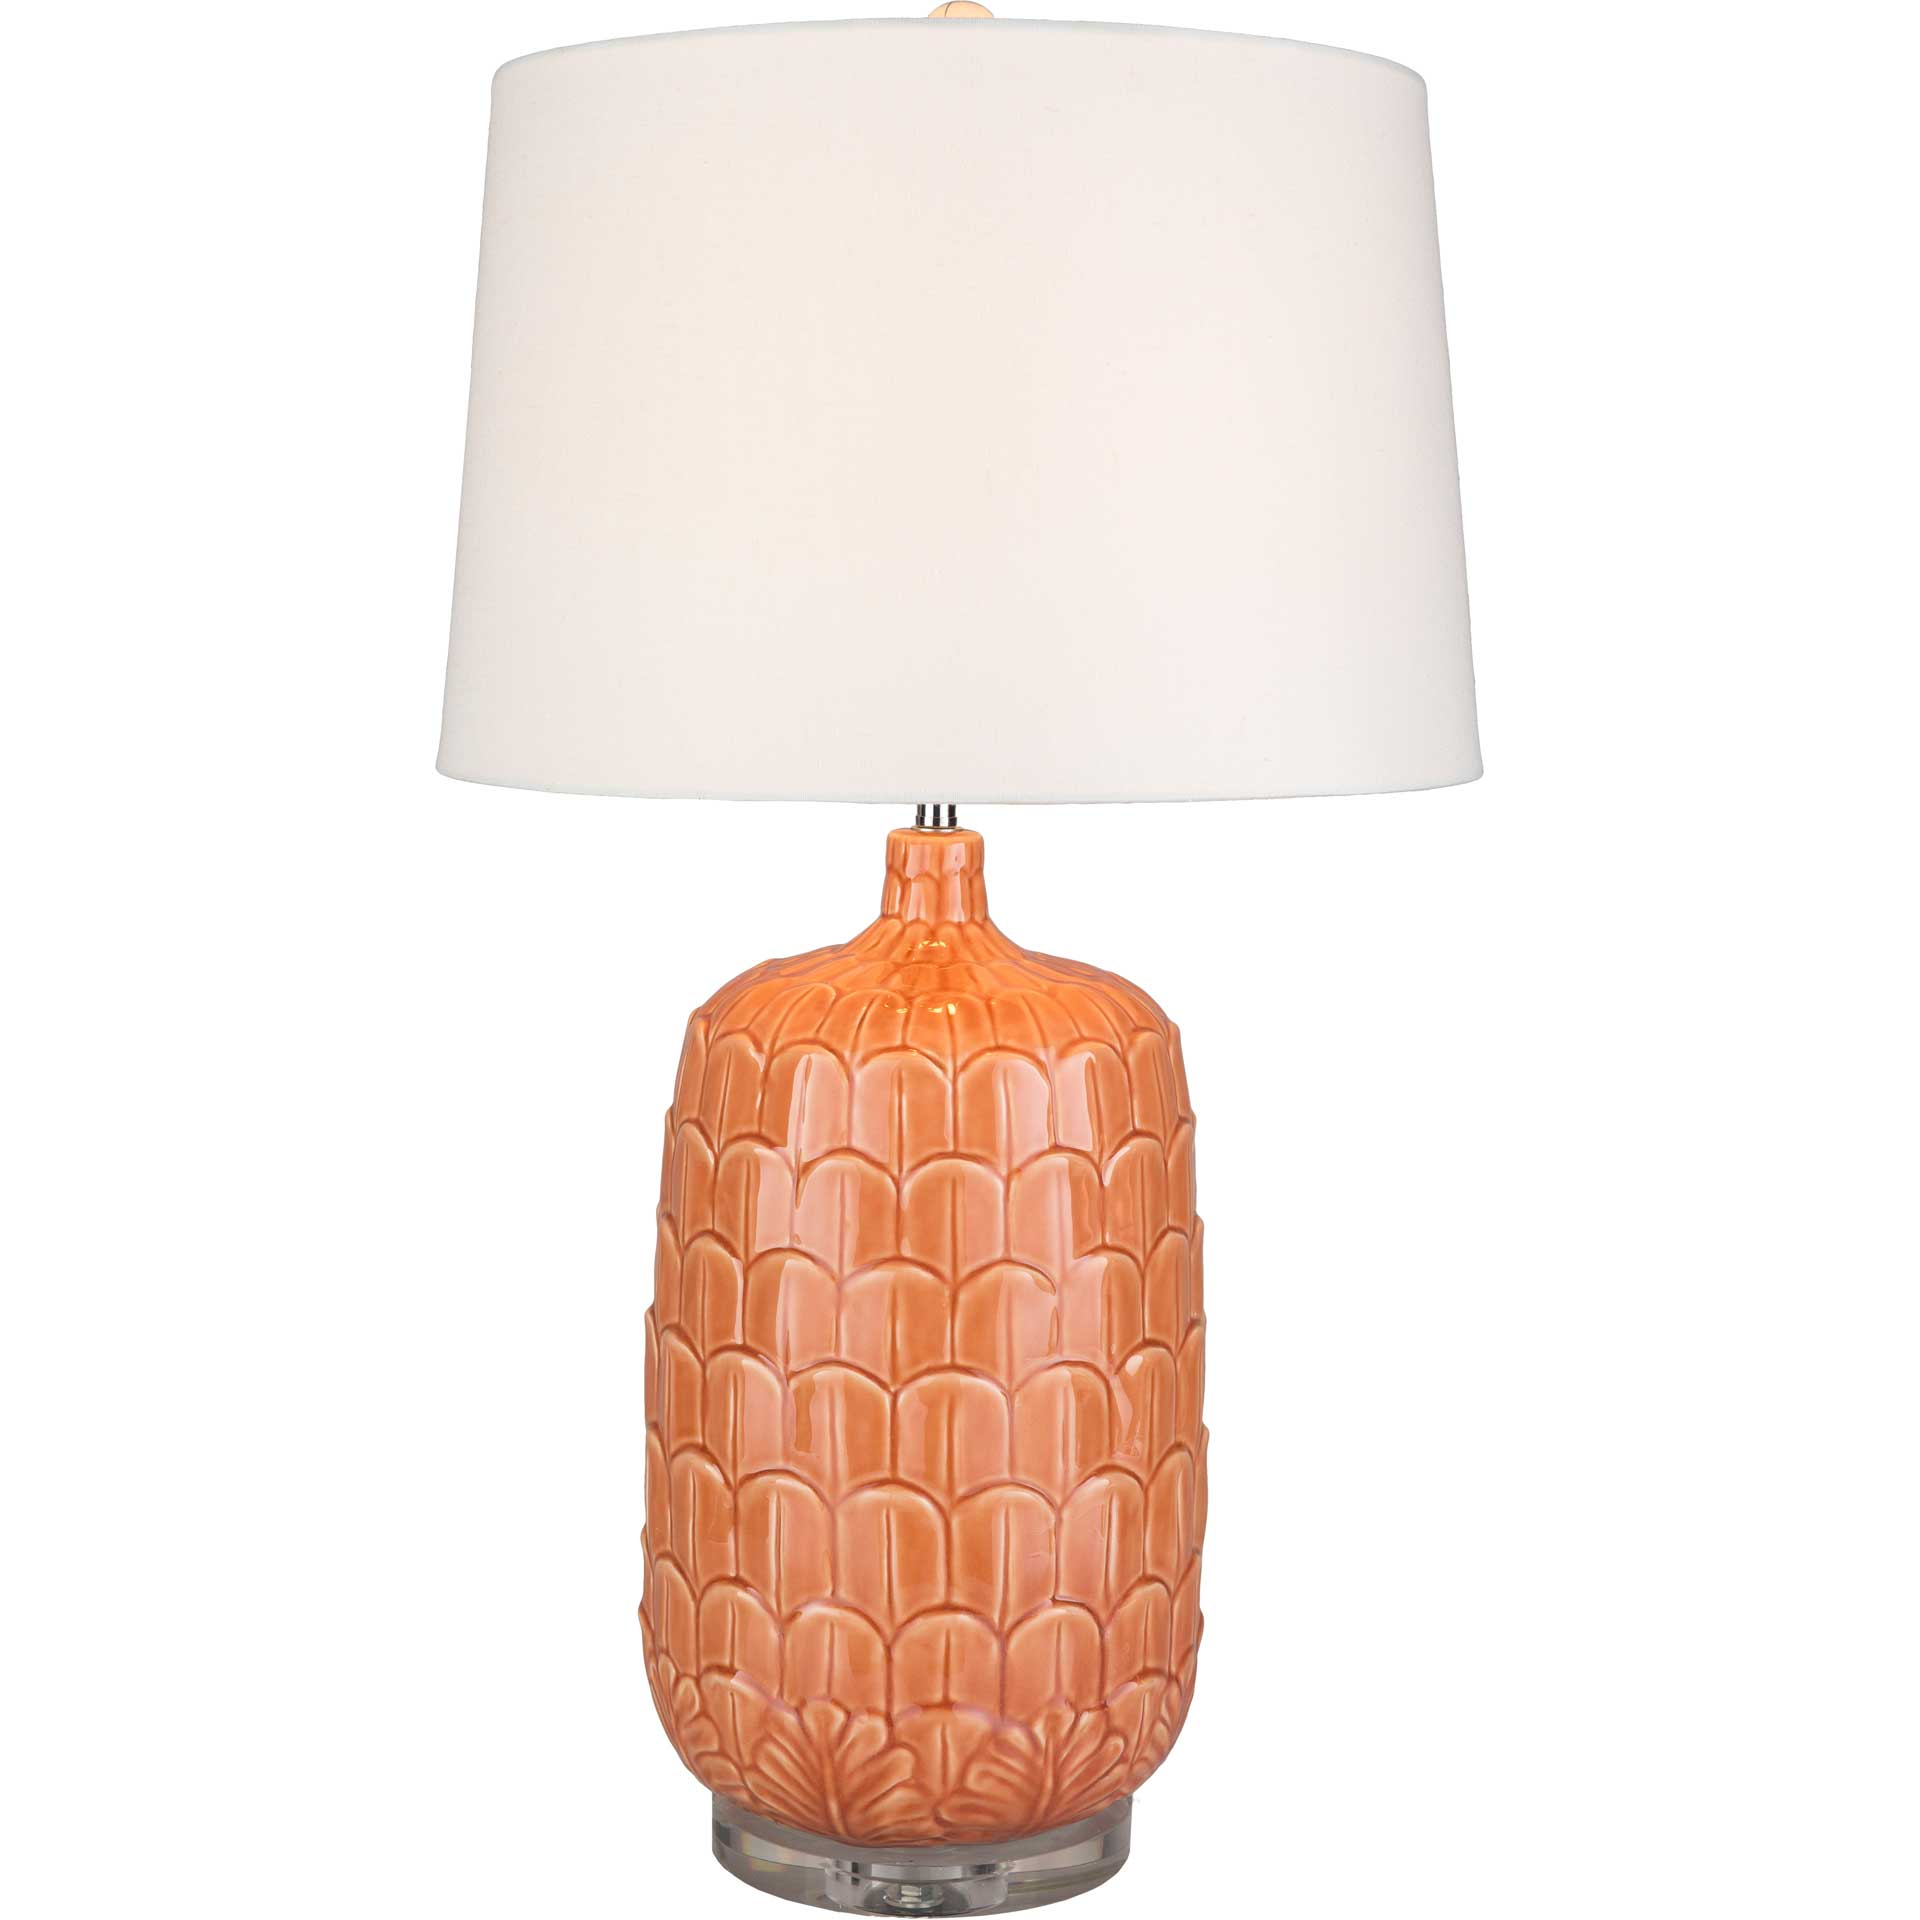 Brian Table Lamp Bright Orange/White/Coral